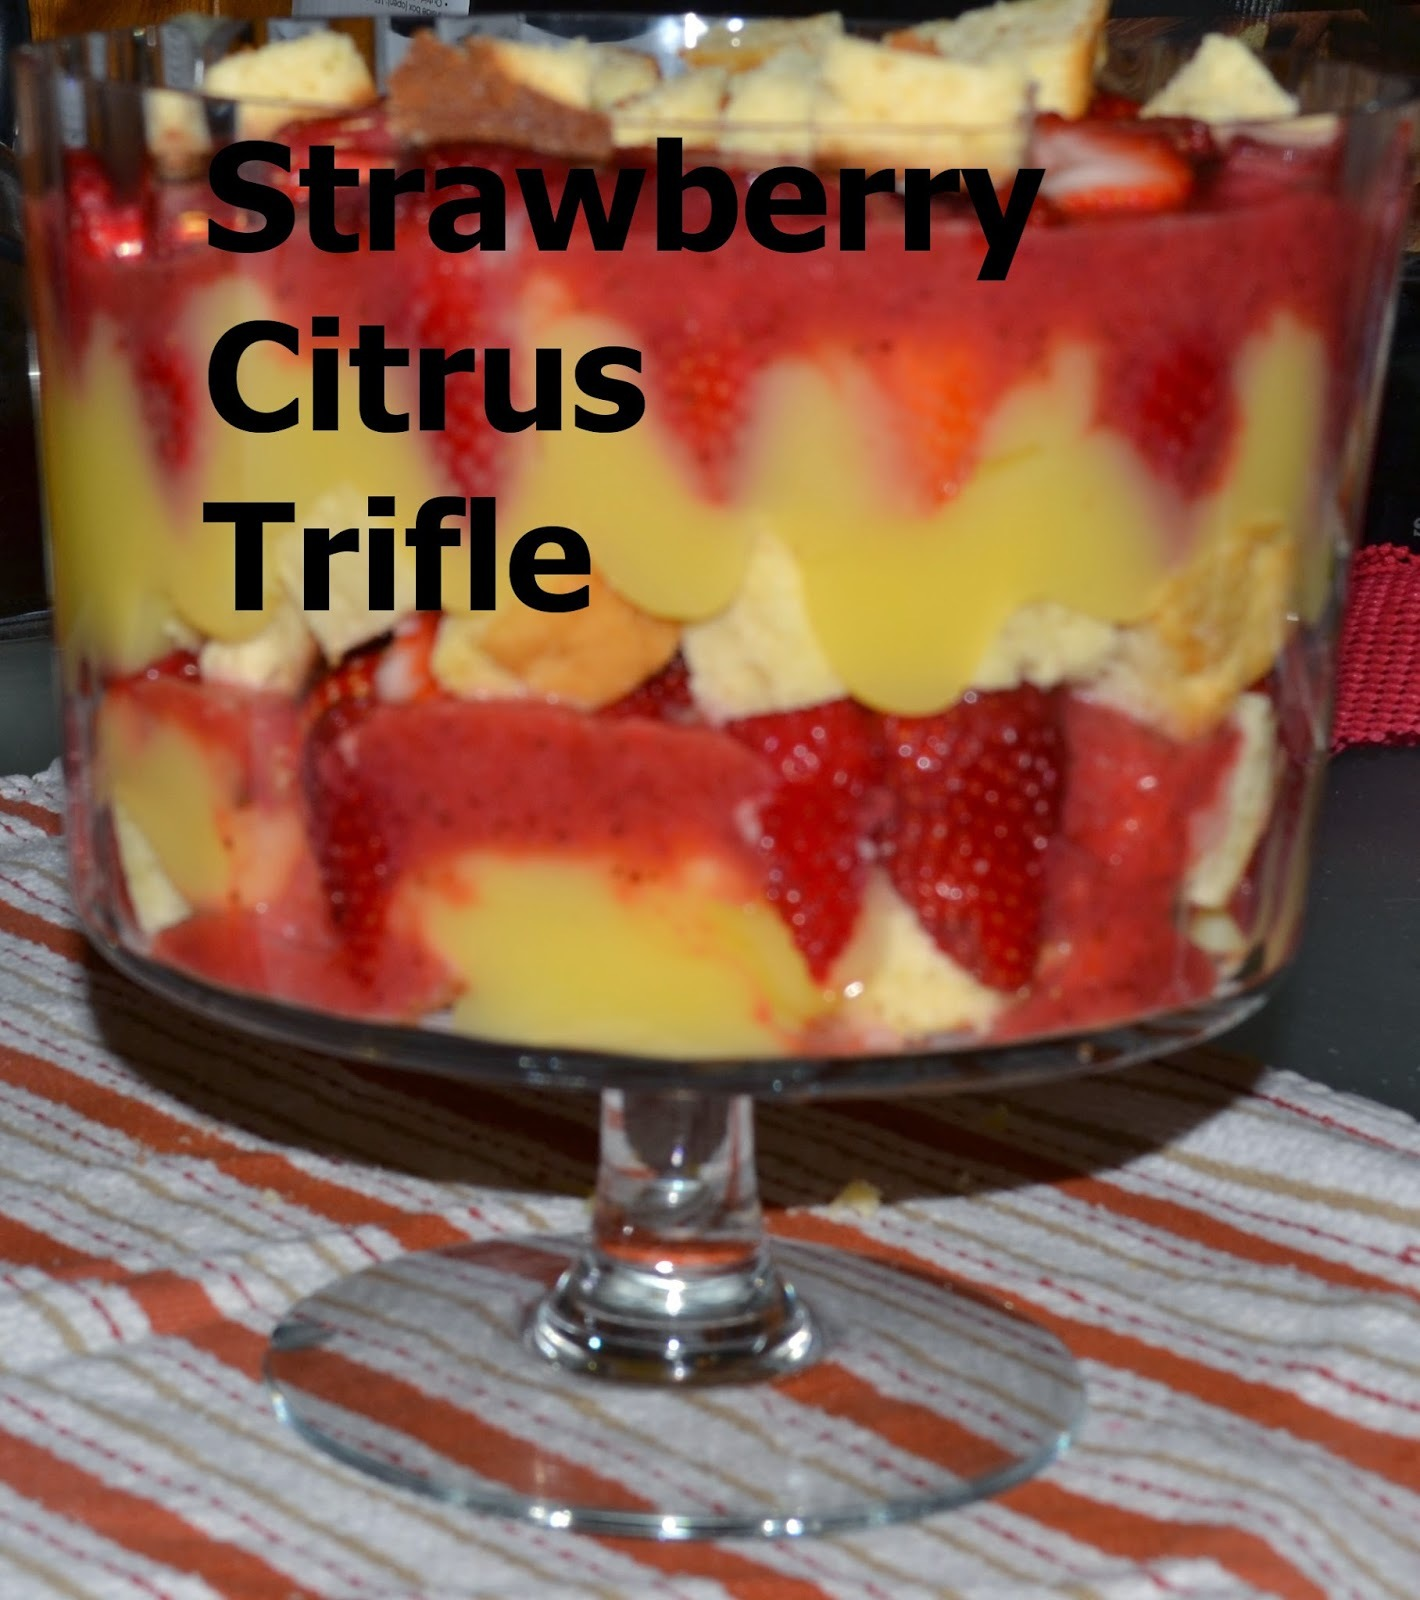 Strawberry Citrus Trifle